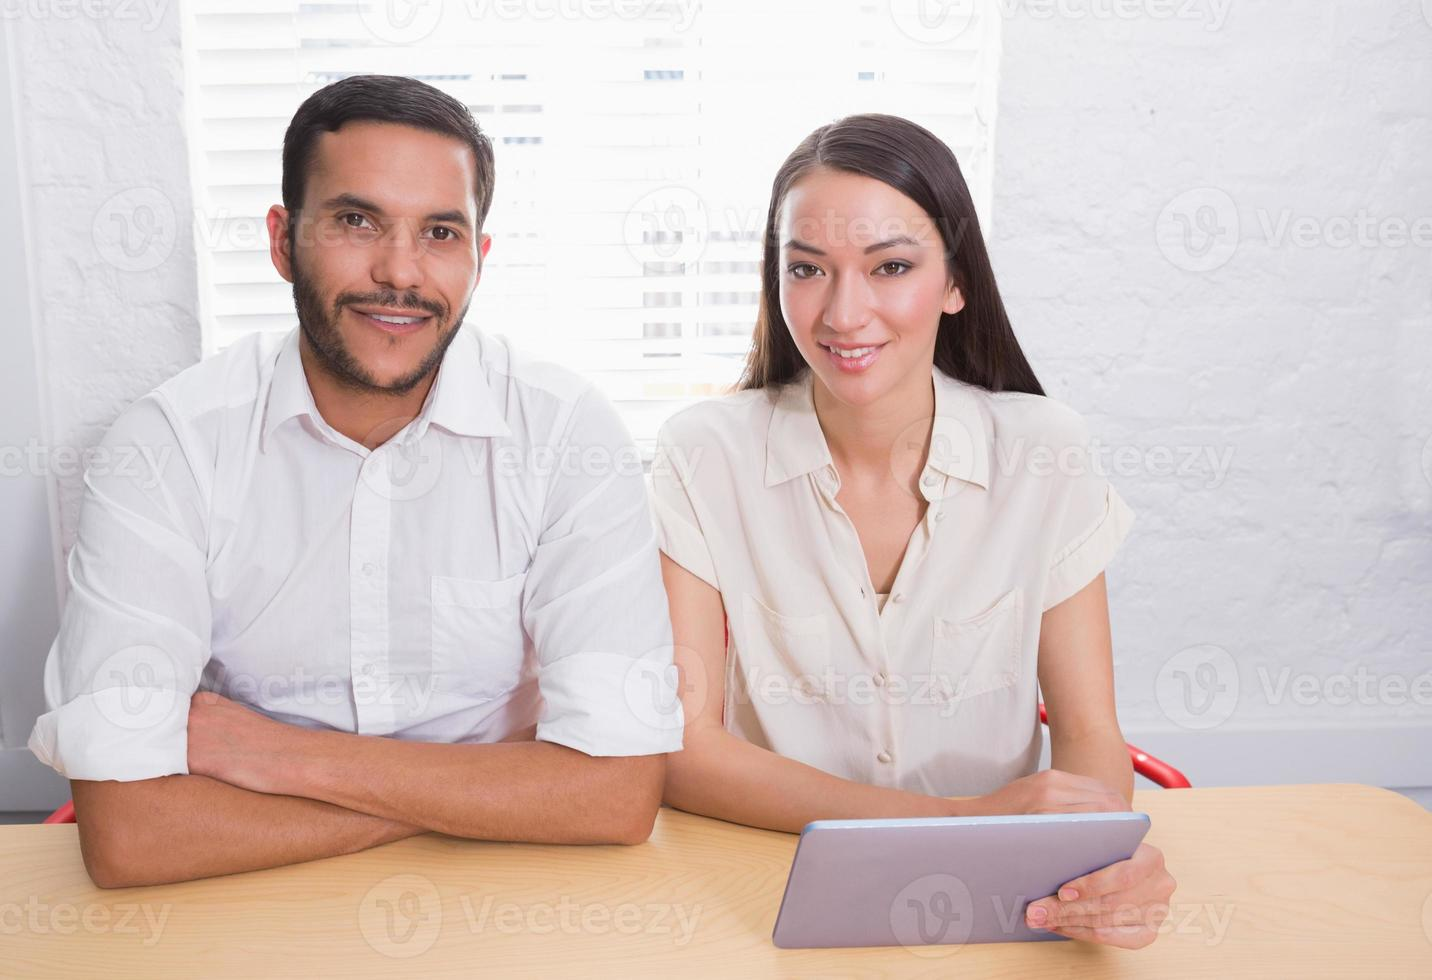 Casual business people using digital tablet photo